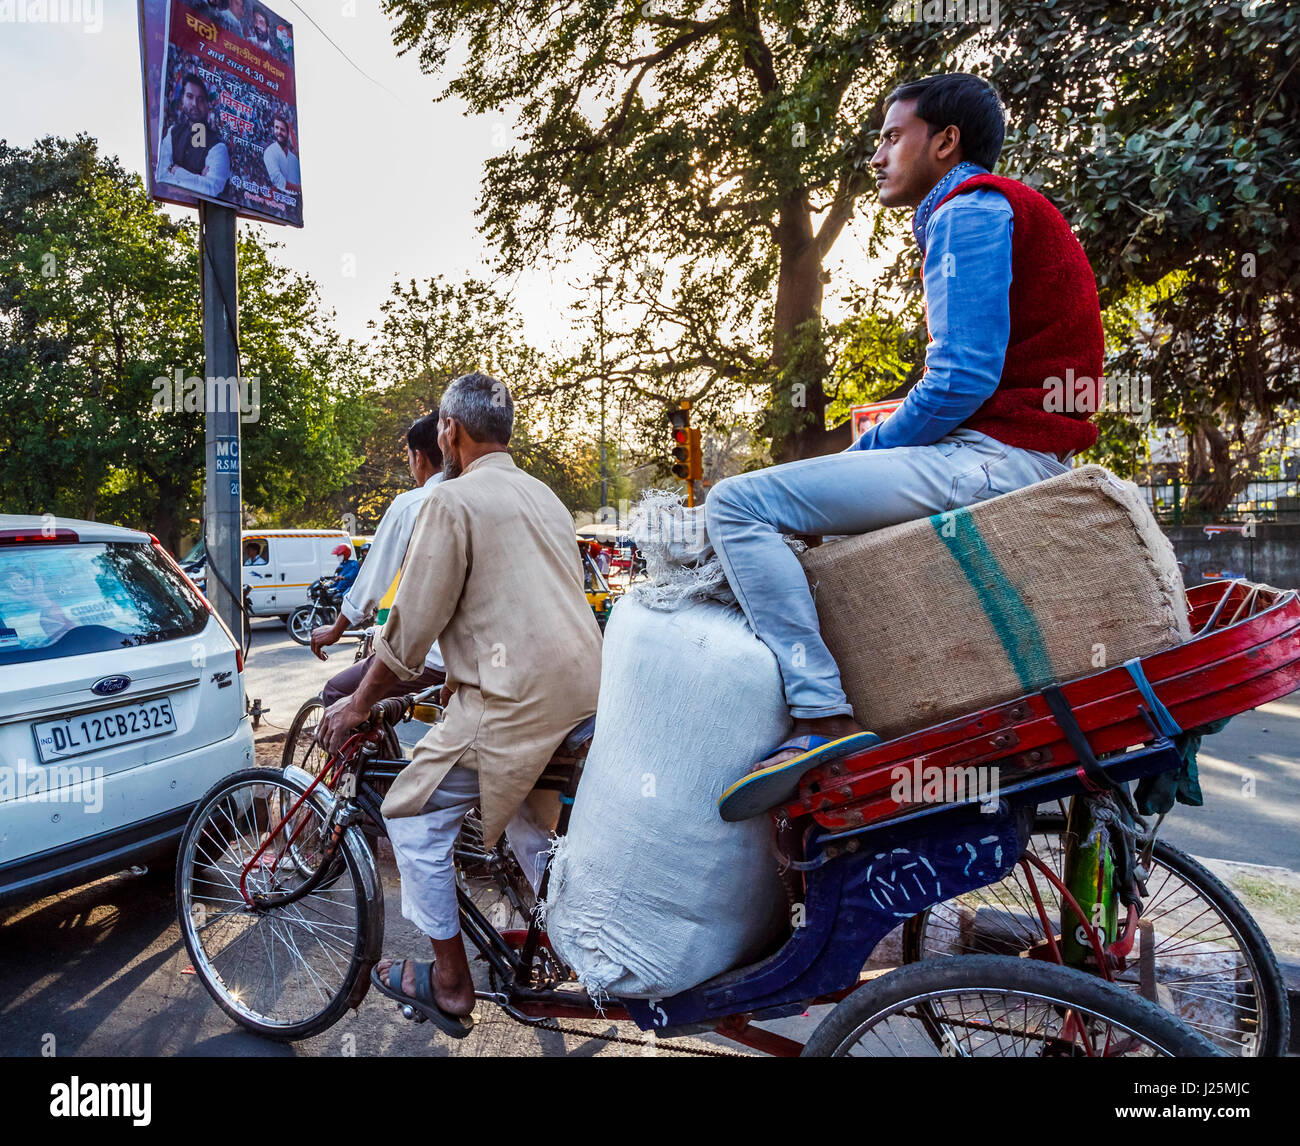 Local Indian man pedalling a tricycle rickshaw, passenger sitting on a large load of sacks at a road junction in - Stock Image